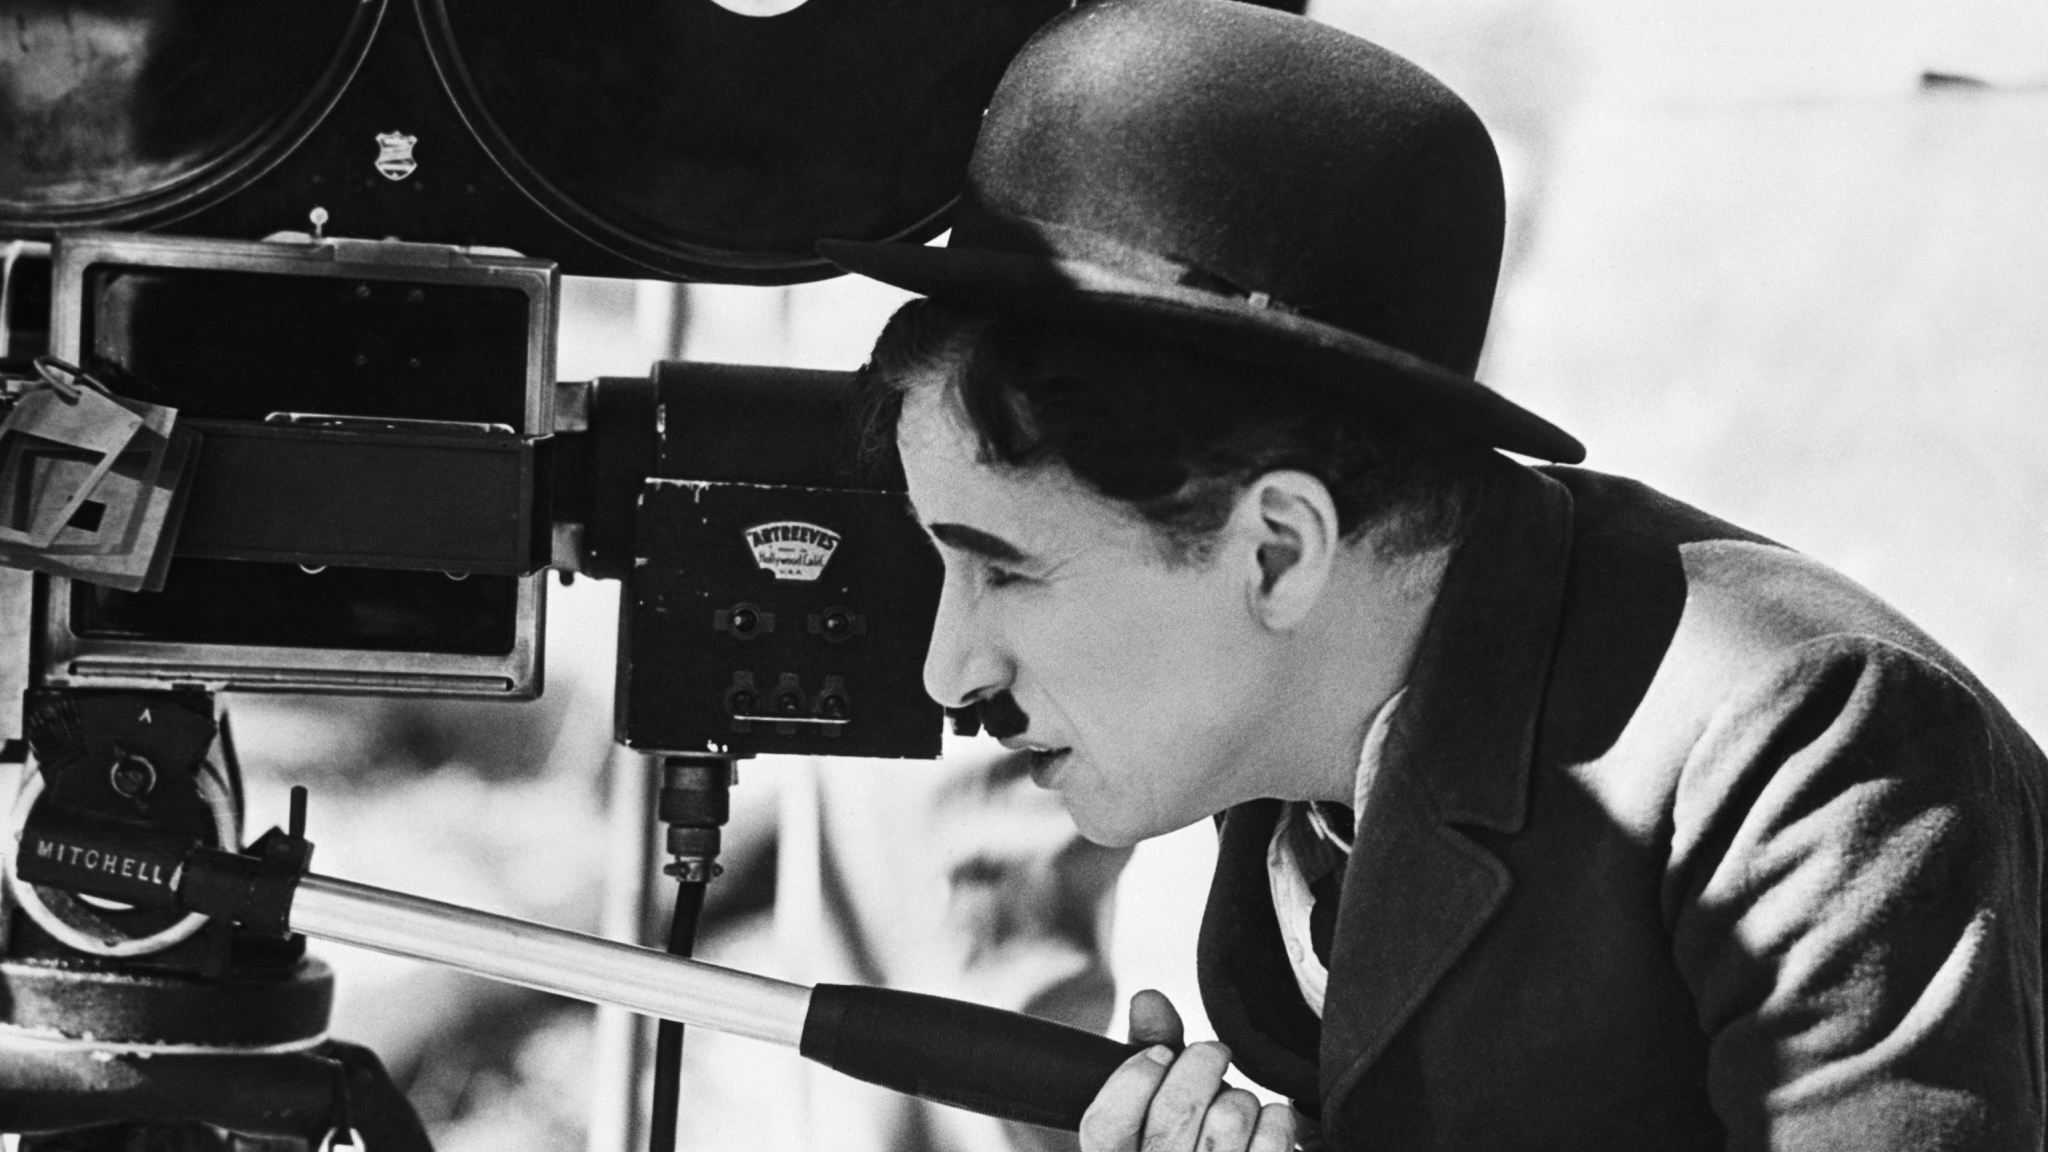 Download charlie chaplin camera bowler hat 2048x1152 resolution download in 2048x1152 thecheapjerseys Images